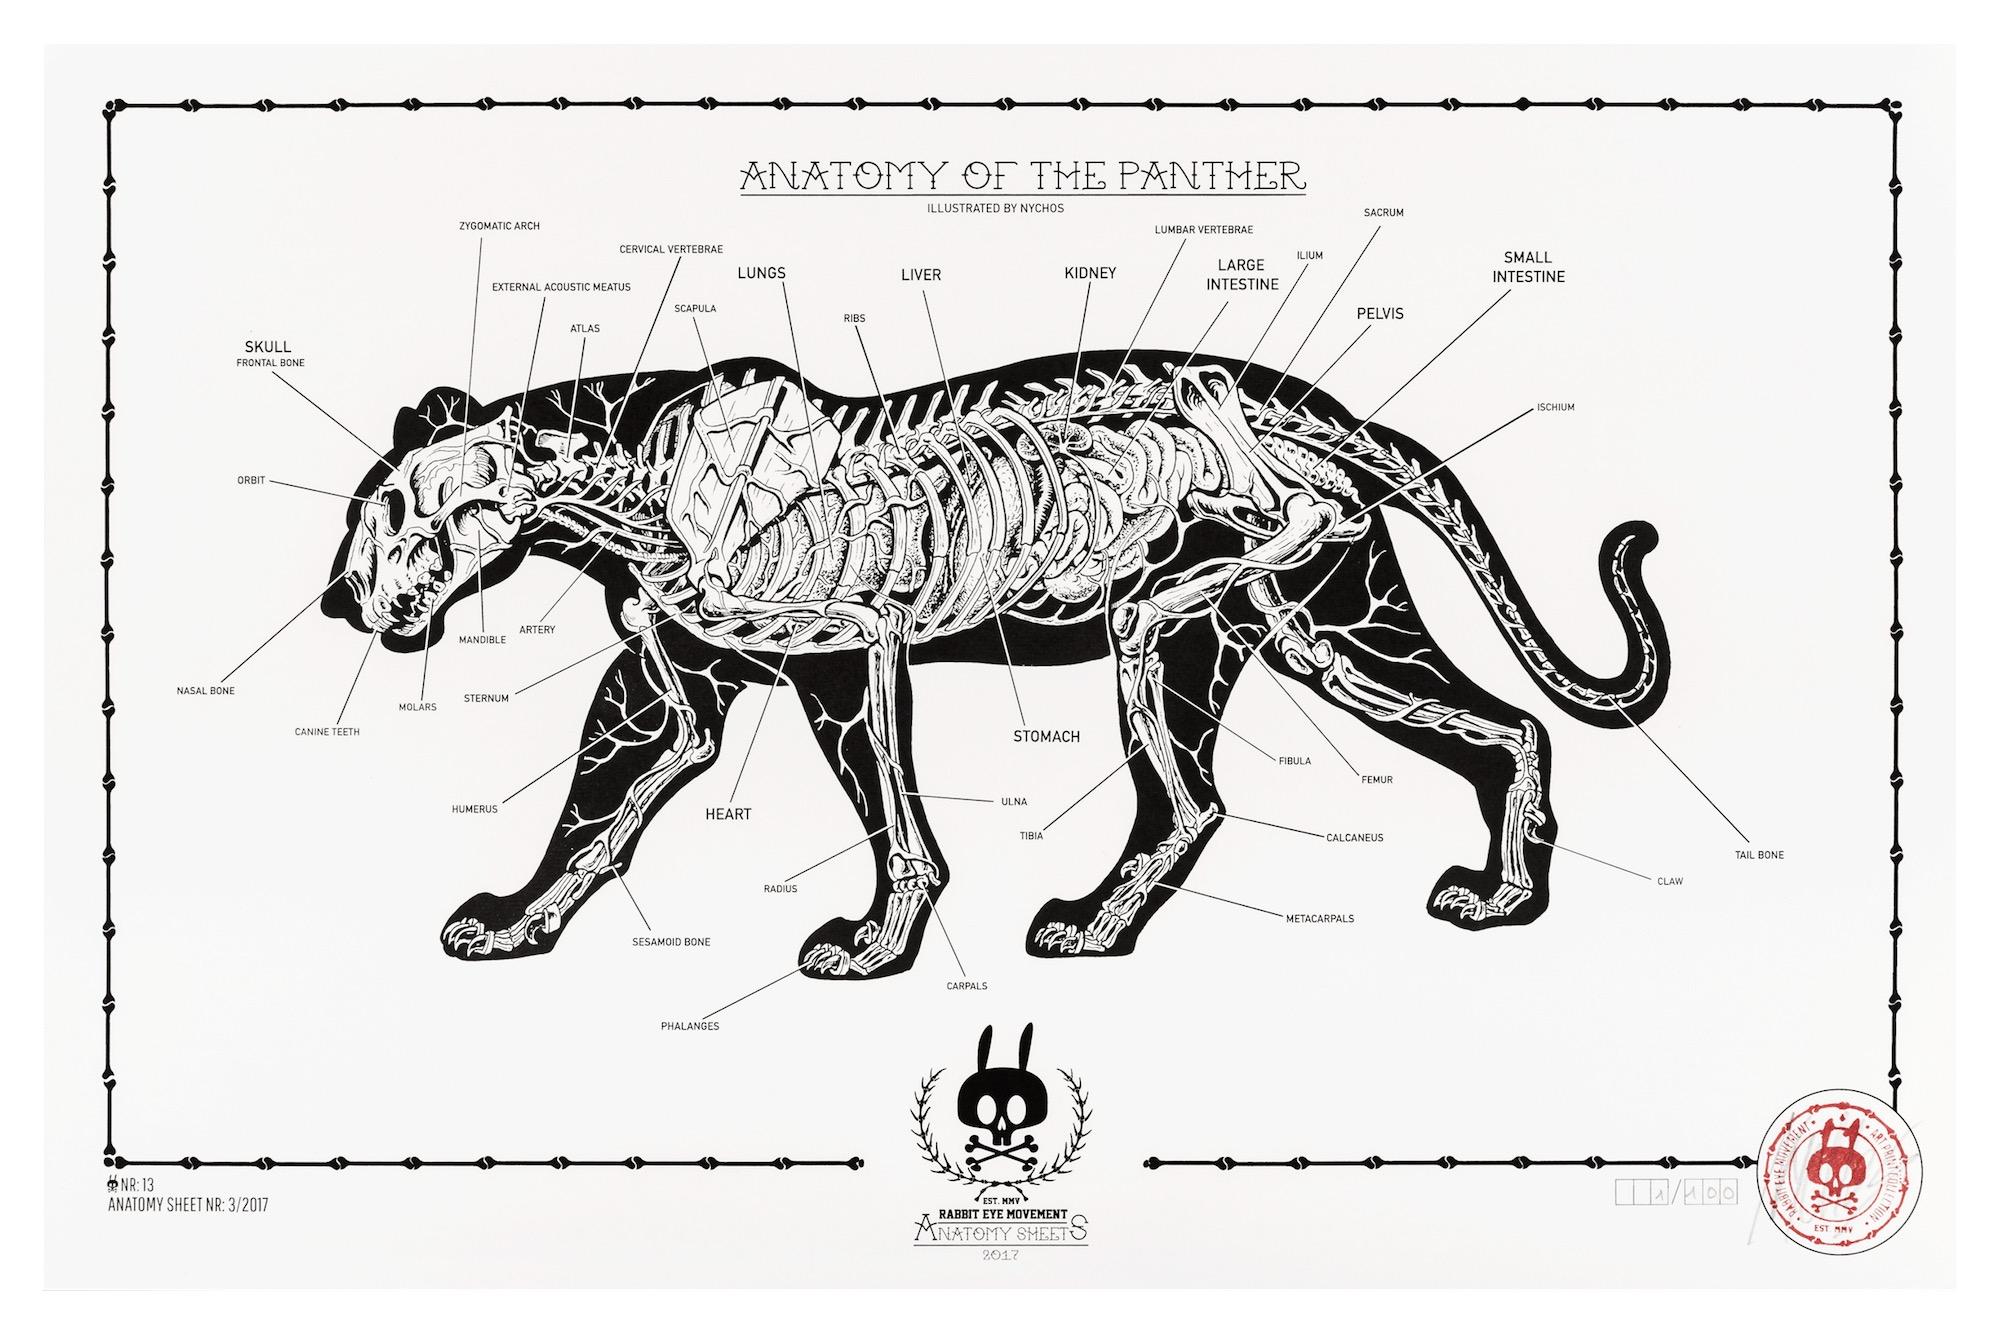 Anatomy Of The Panther Anatomy Sheet No 13